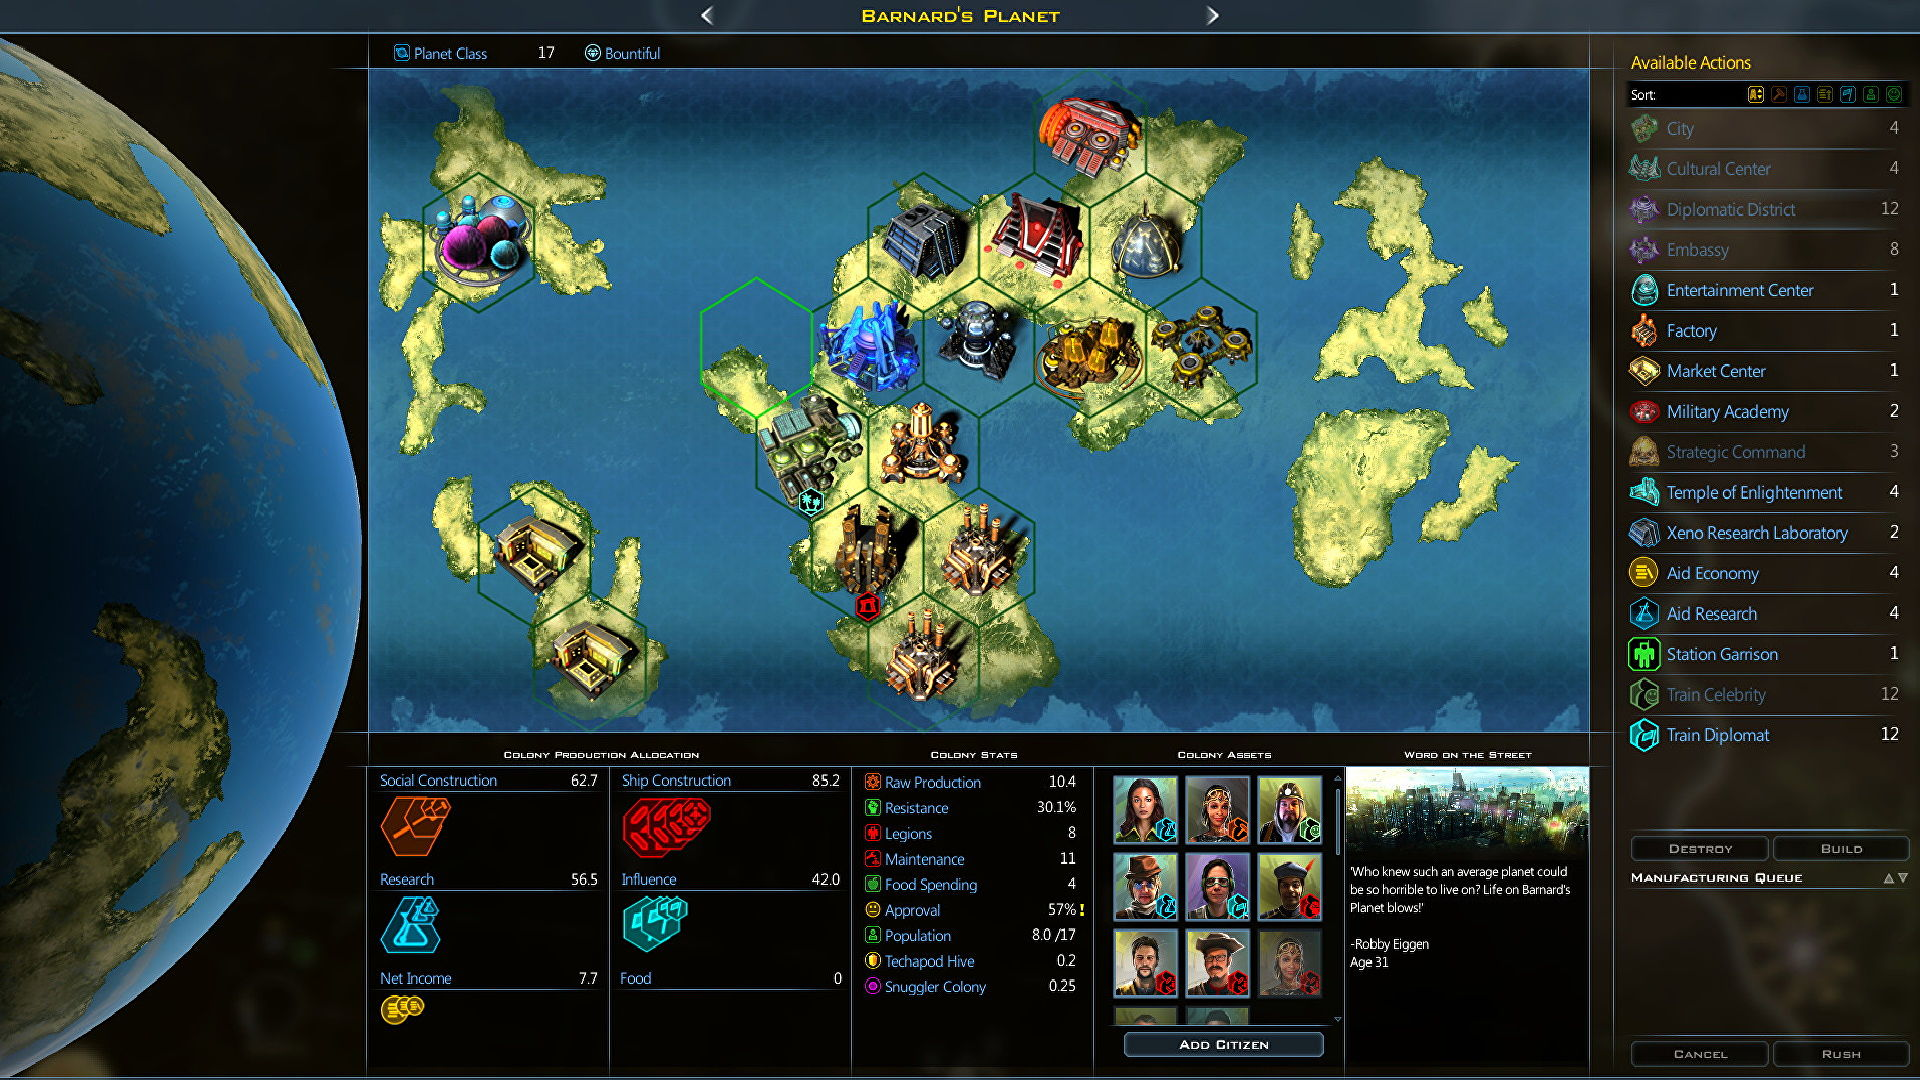 Galactic Civilizations III is free on the Epic Games Store